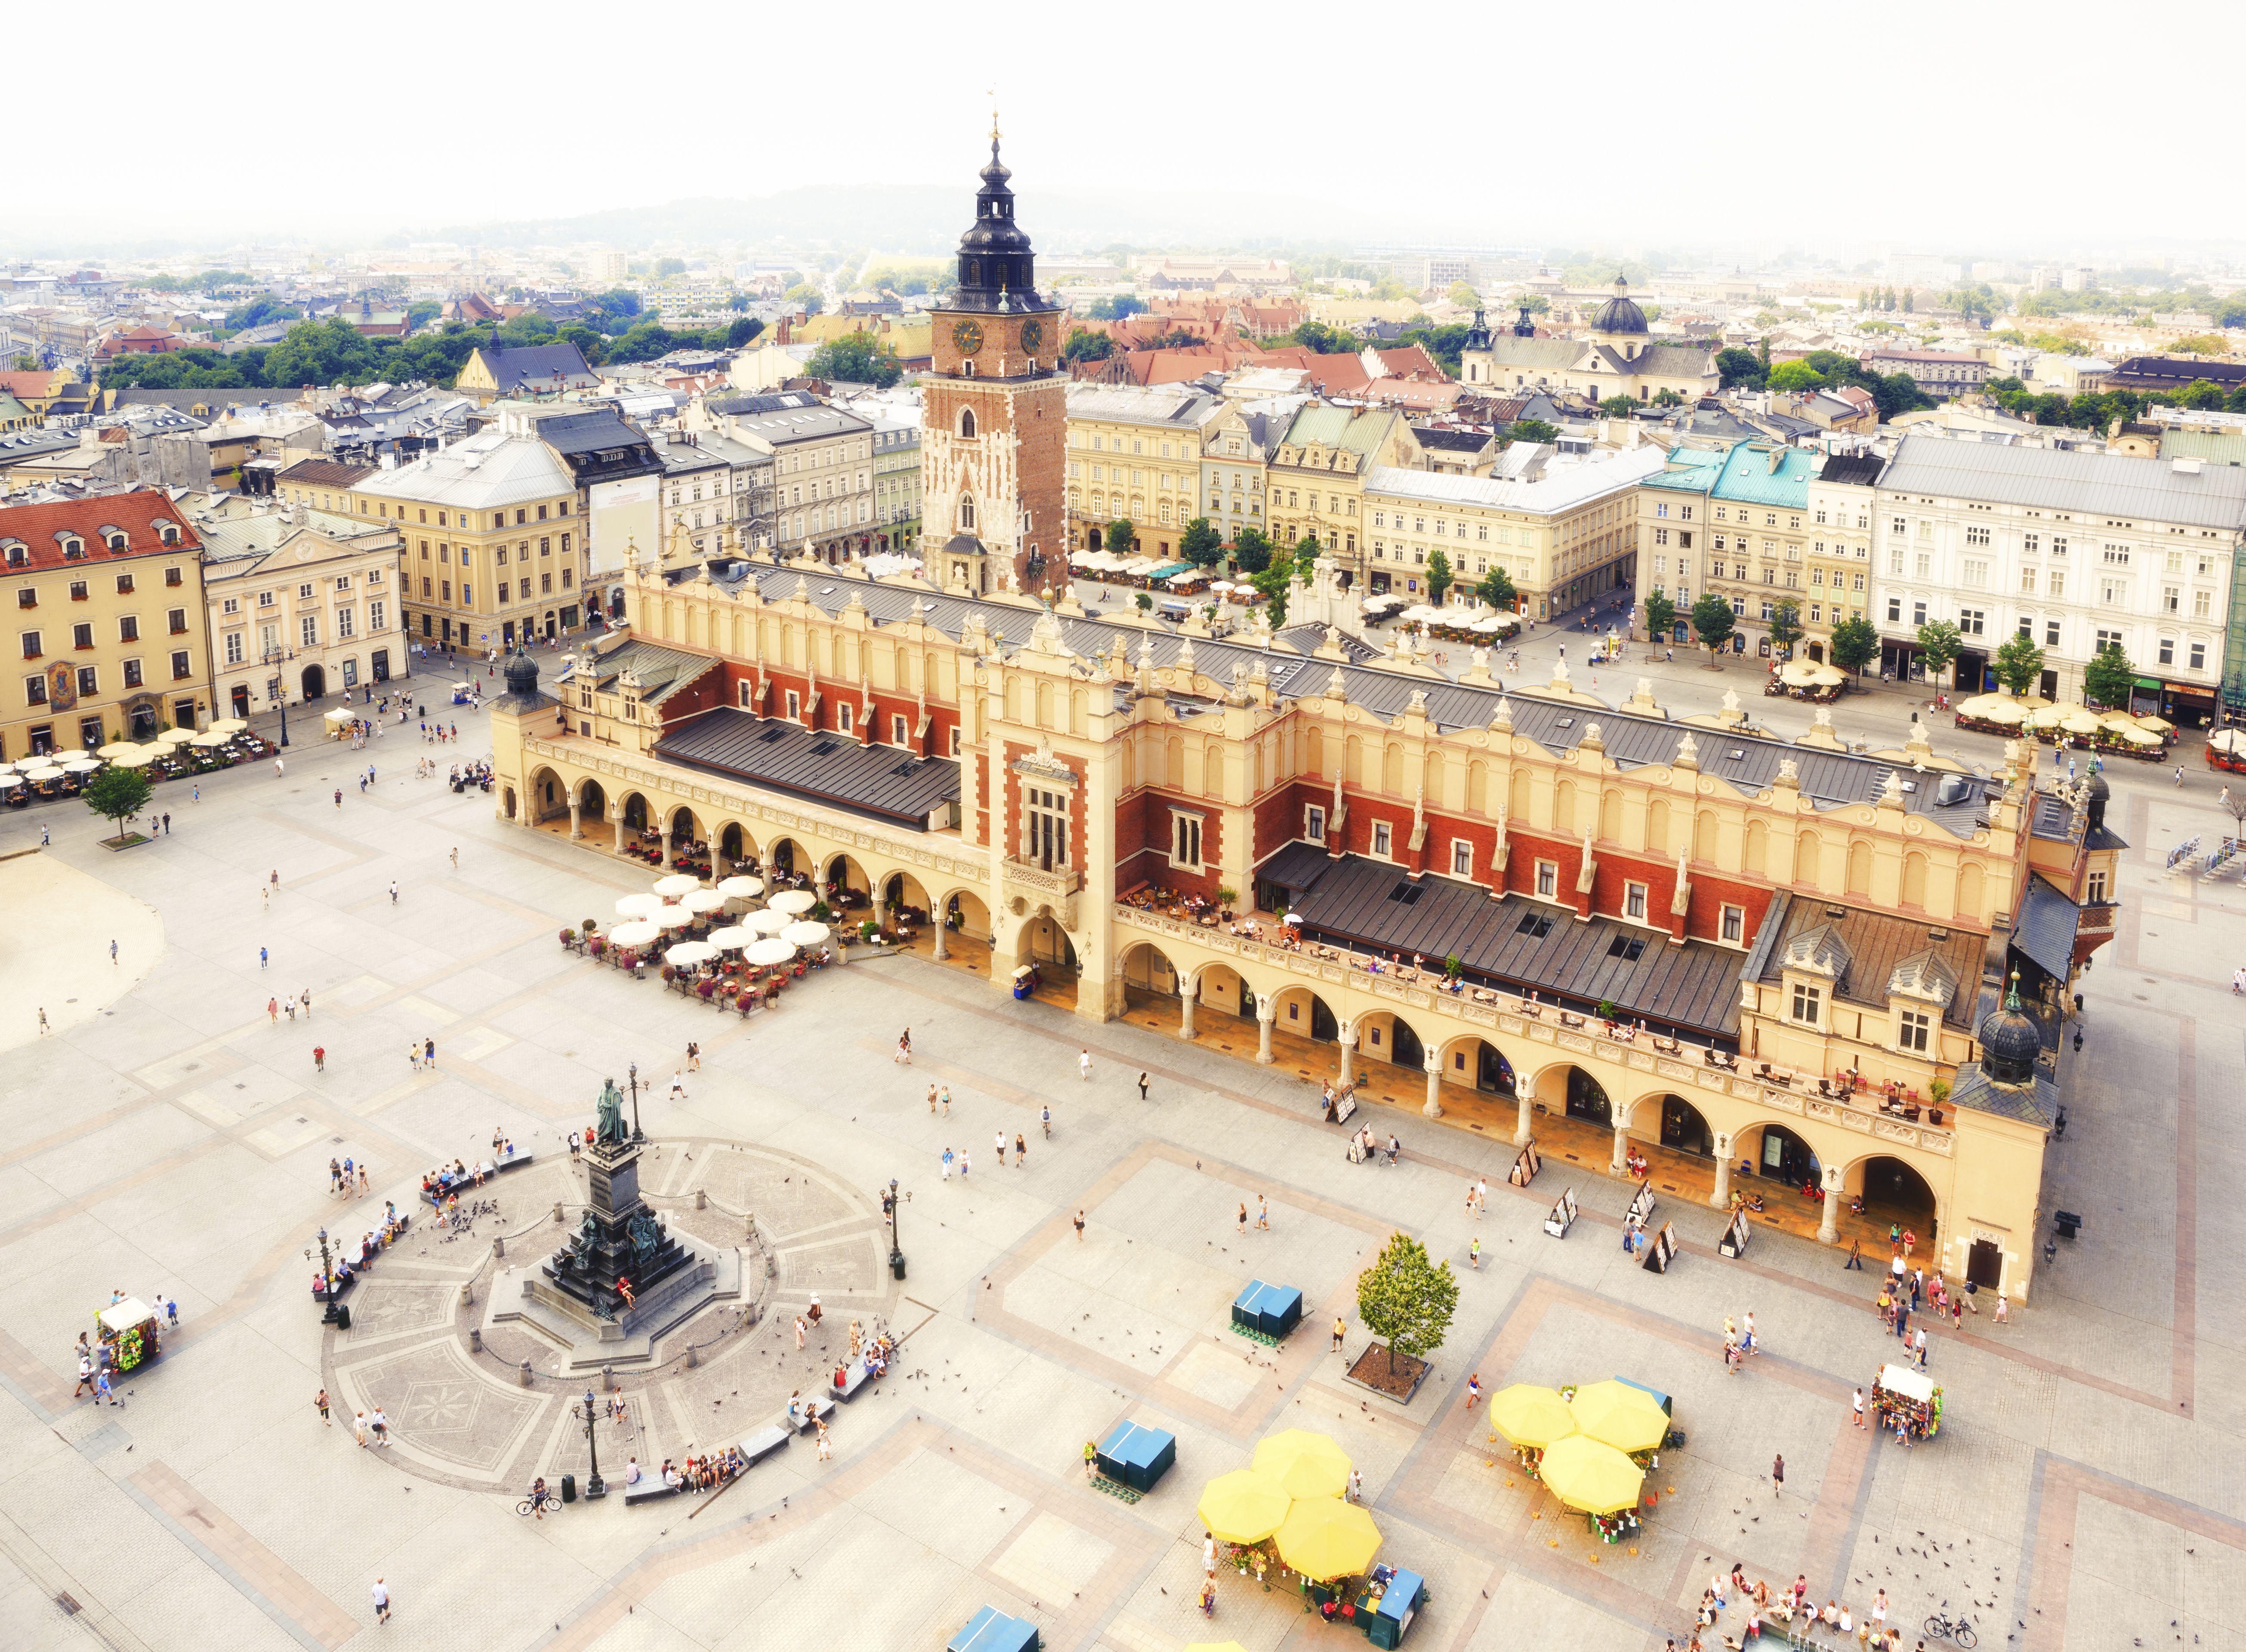 Krakow Wallpapers Images Photos Pictures Backgrounds 5220x3840